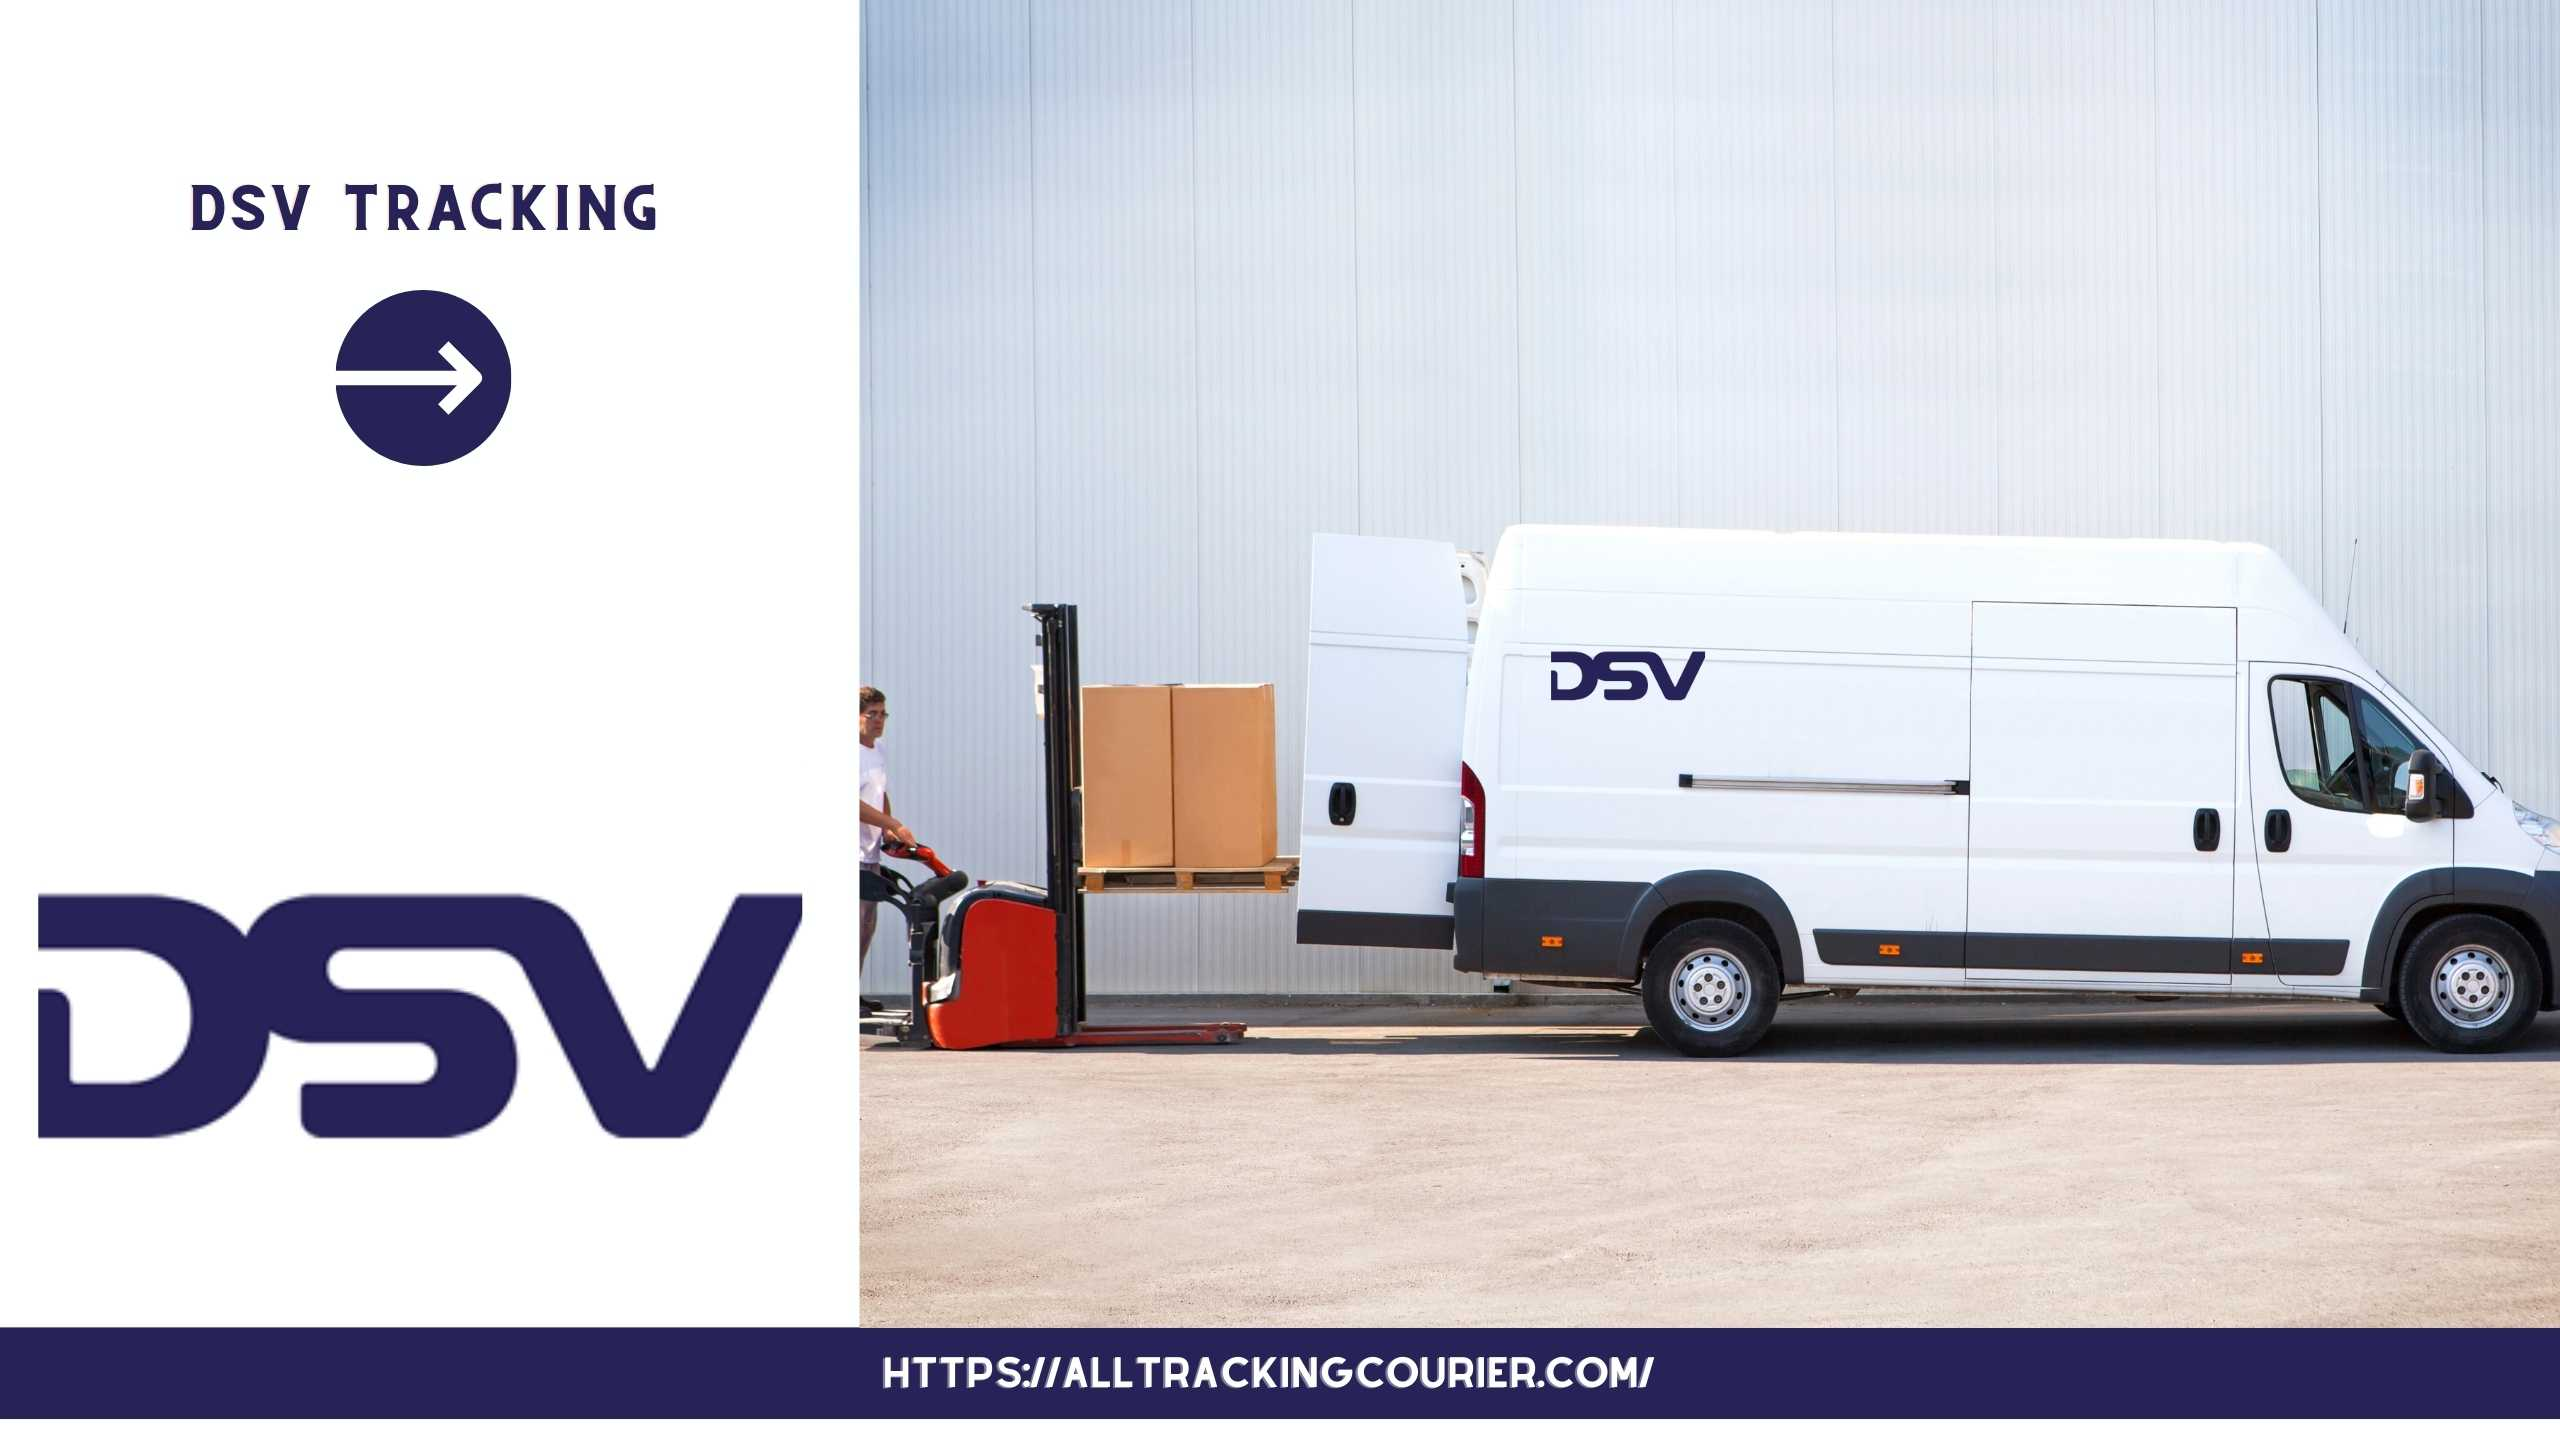 DSV Tracking - Track Your Shipments Live - Alltrackingcourier